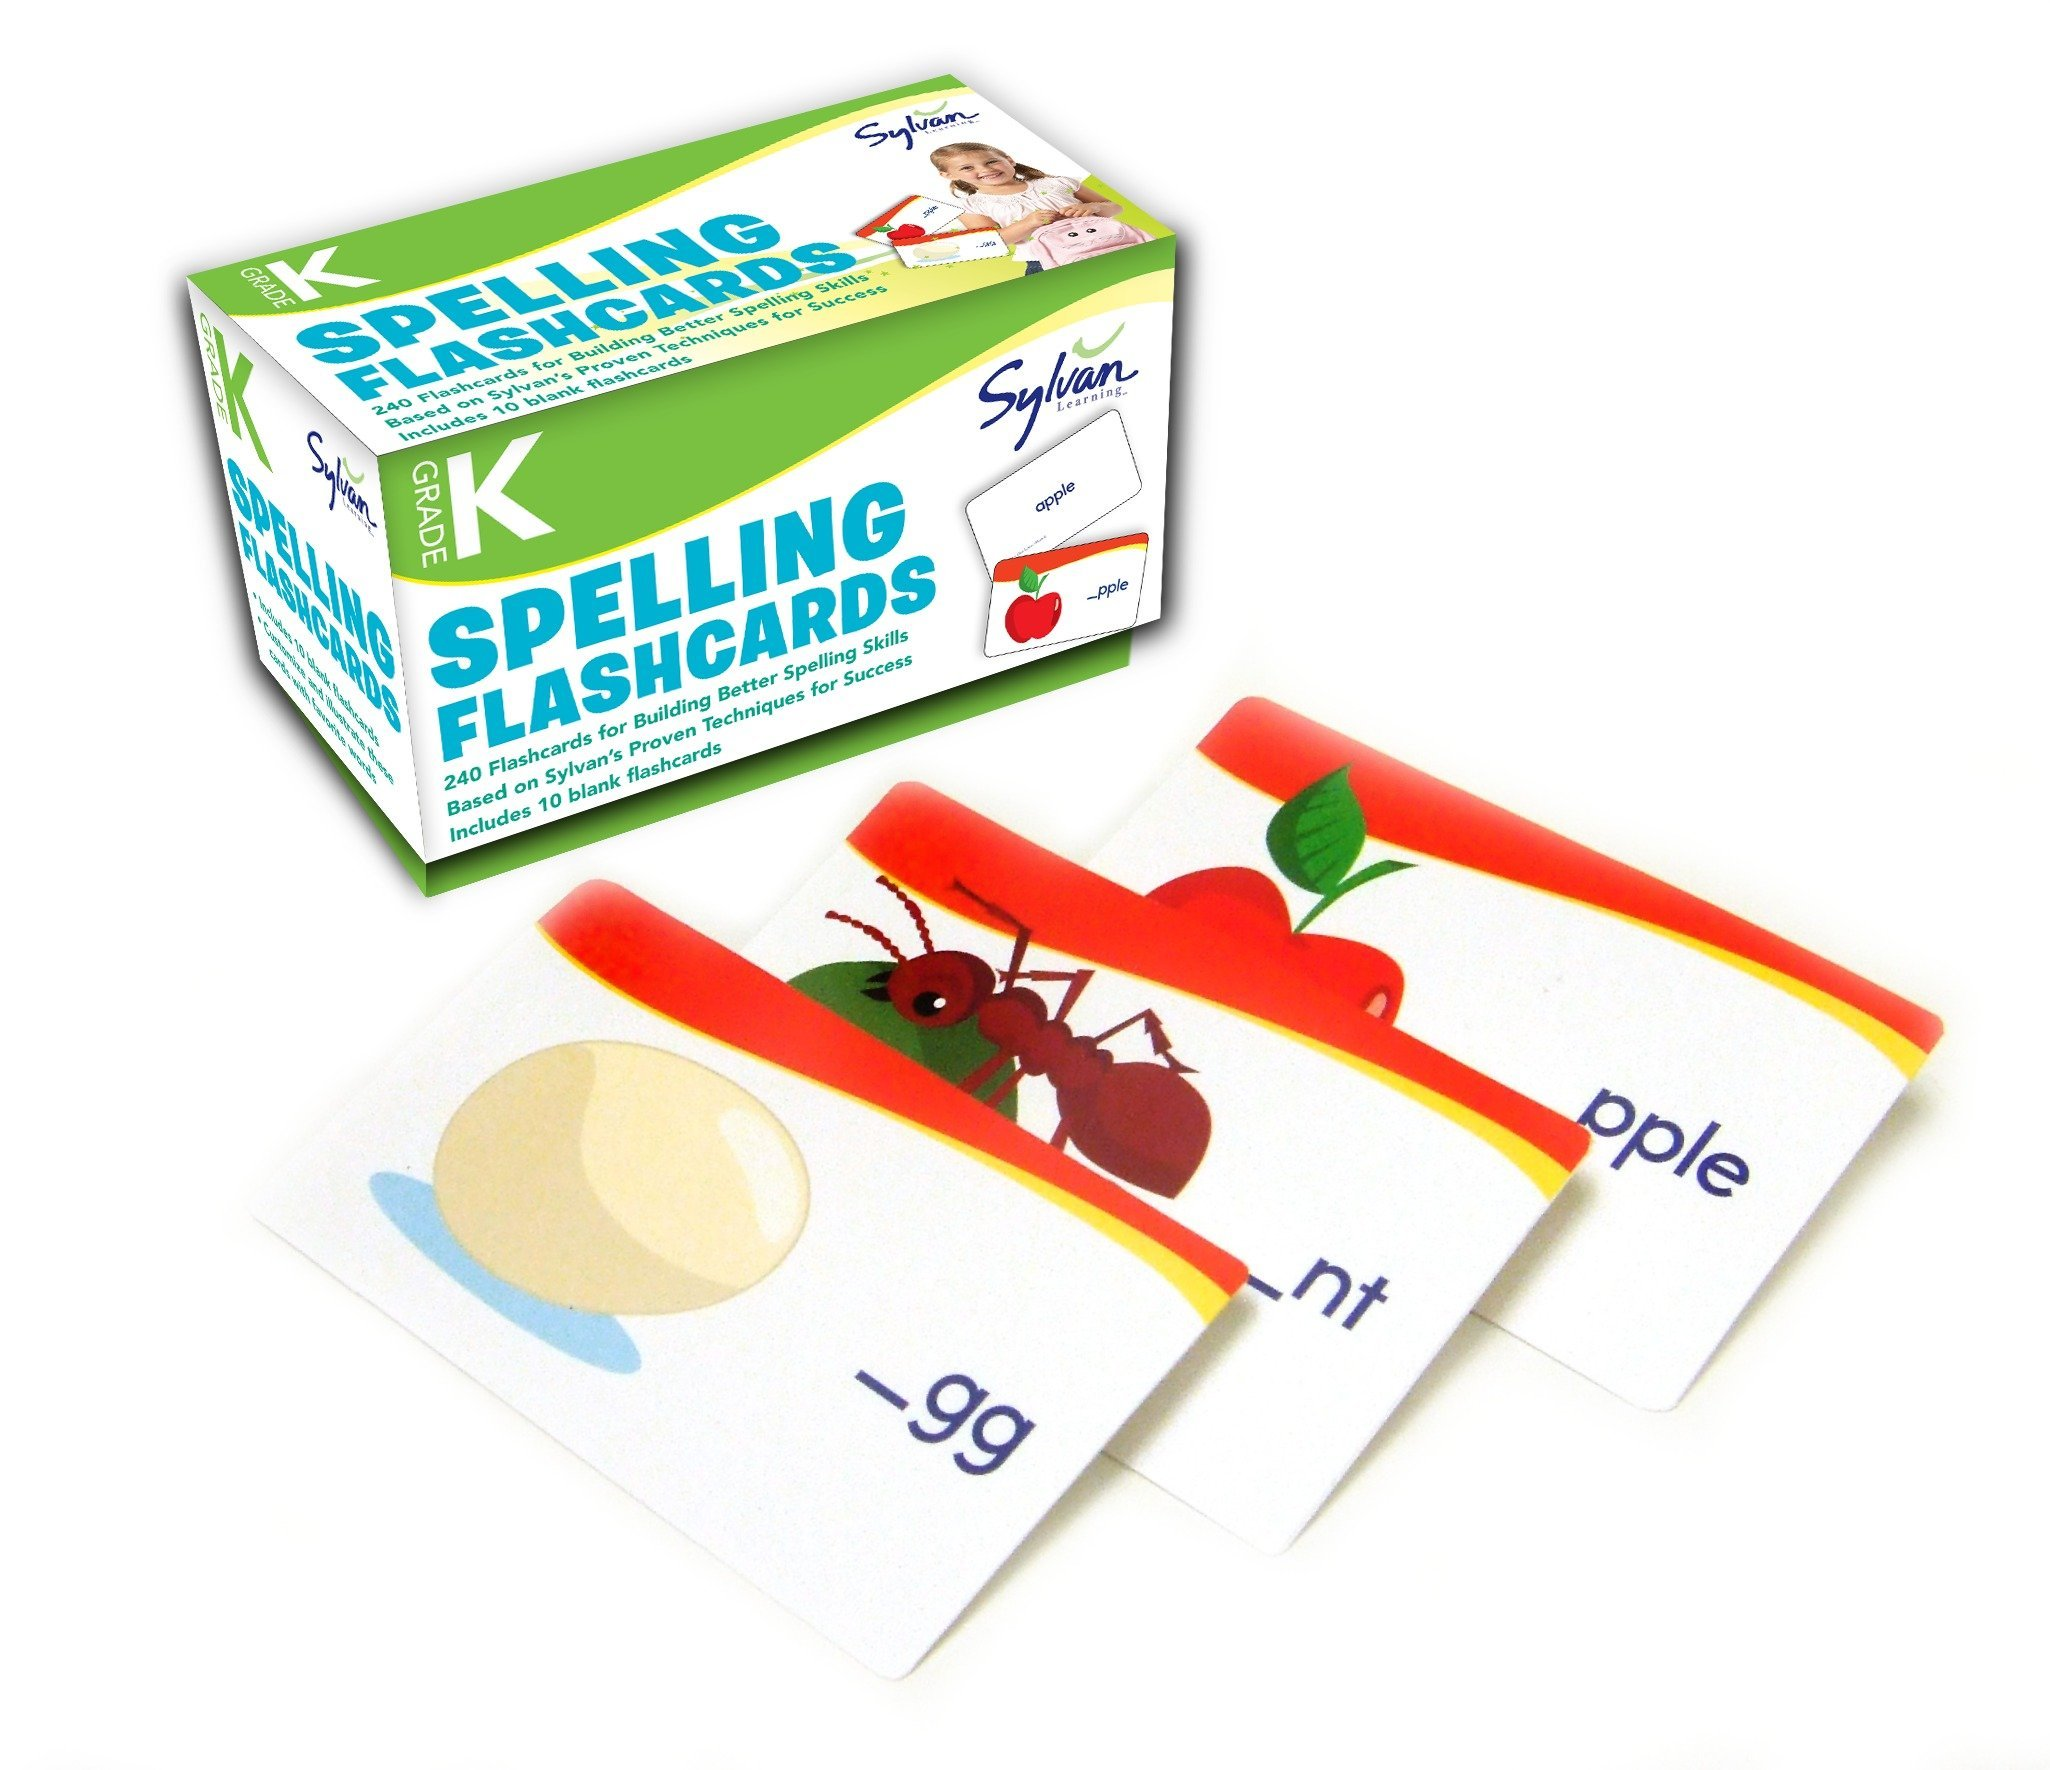 Kindergarten Spelling Flashcards: 240 Flashcards for Building Better Spelling Skills Based on Sylvan's Proven Techniques for Success (Sylvan Language Arts Flashcards) by Sylvan Learning Publishing